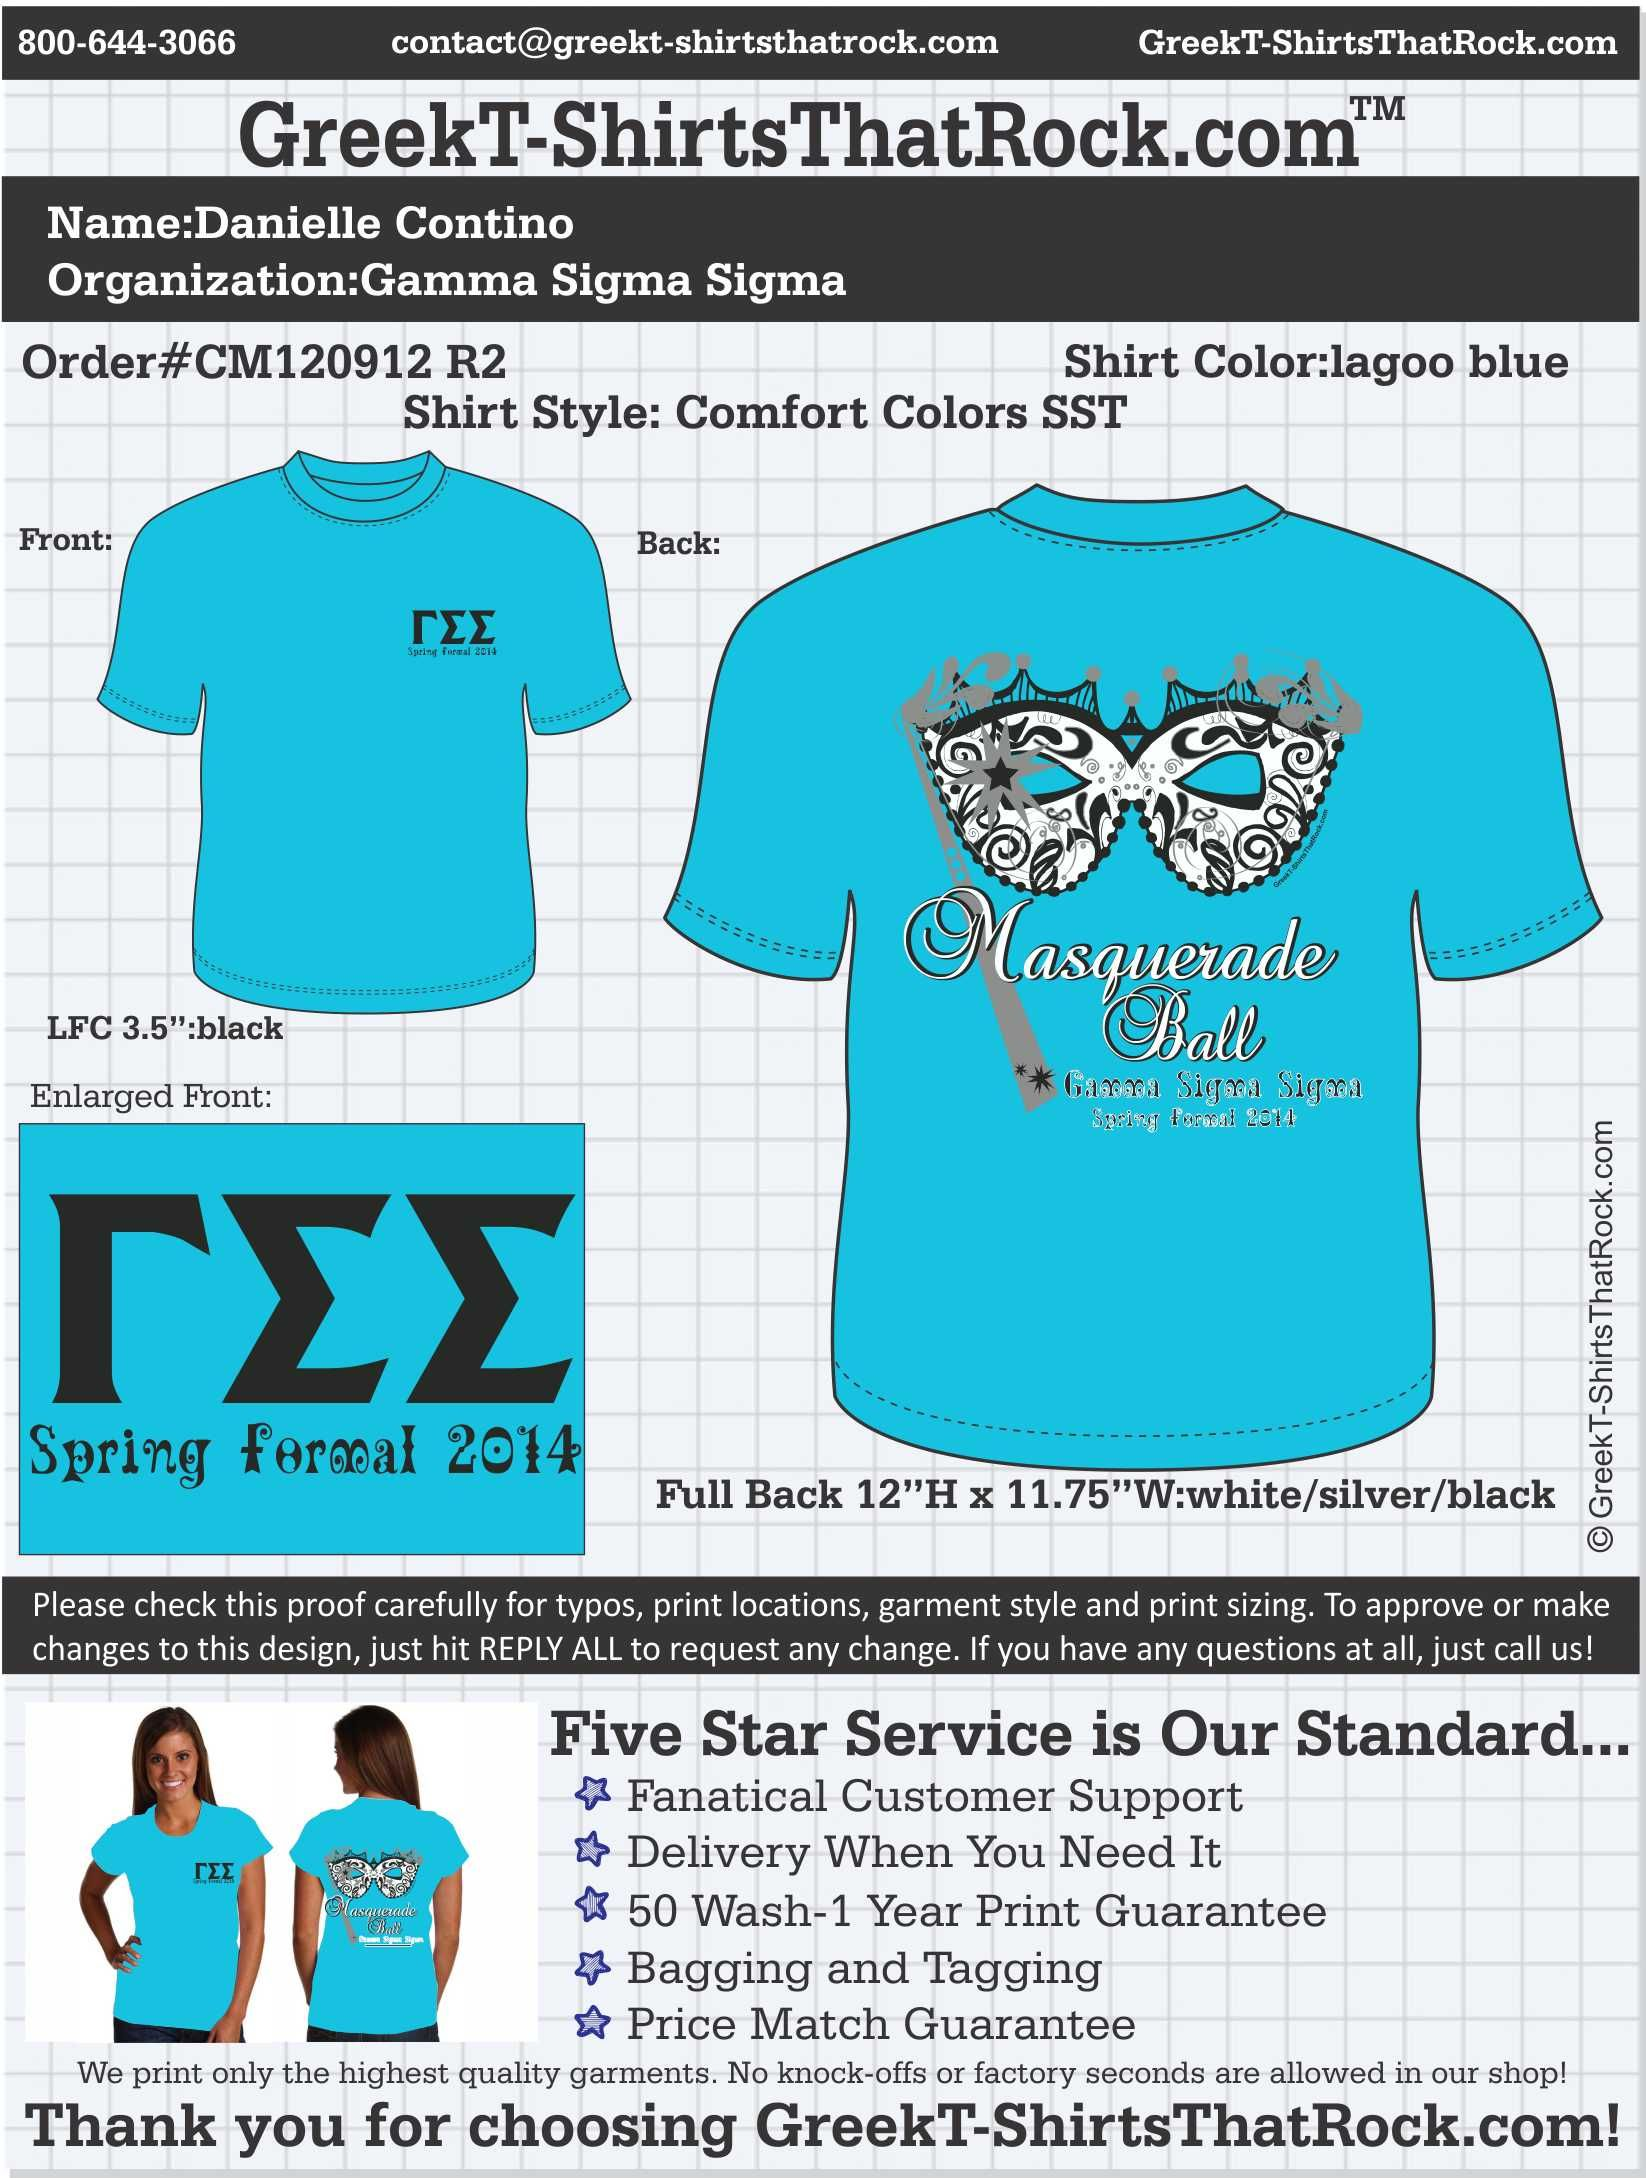 "WELCOME BACK!!!! Upload your next design here and use the *PROMO CODE: GTTR14* to get discounted Comfort Colors Pricing on your next order.  #gttr #greektshirts #greekt-shirts #greektshirtsthatrock ""Pin it to Win It"" For Your Chapter in Fall 2014."